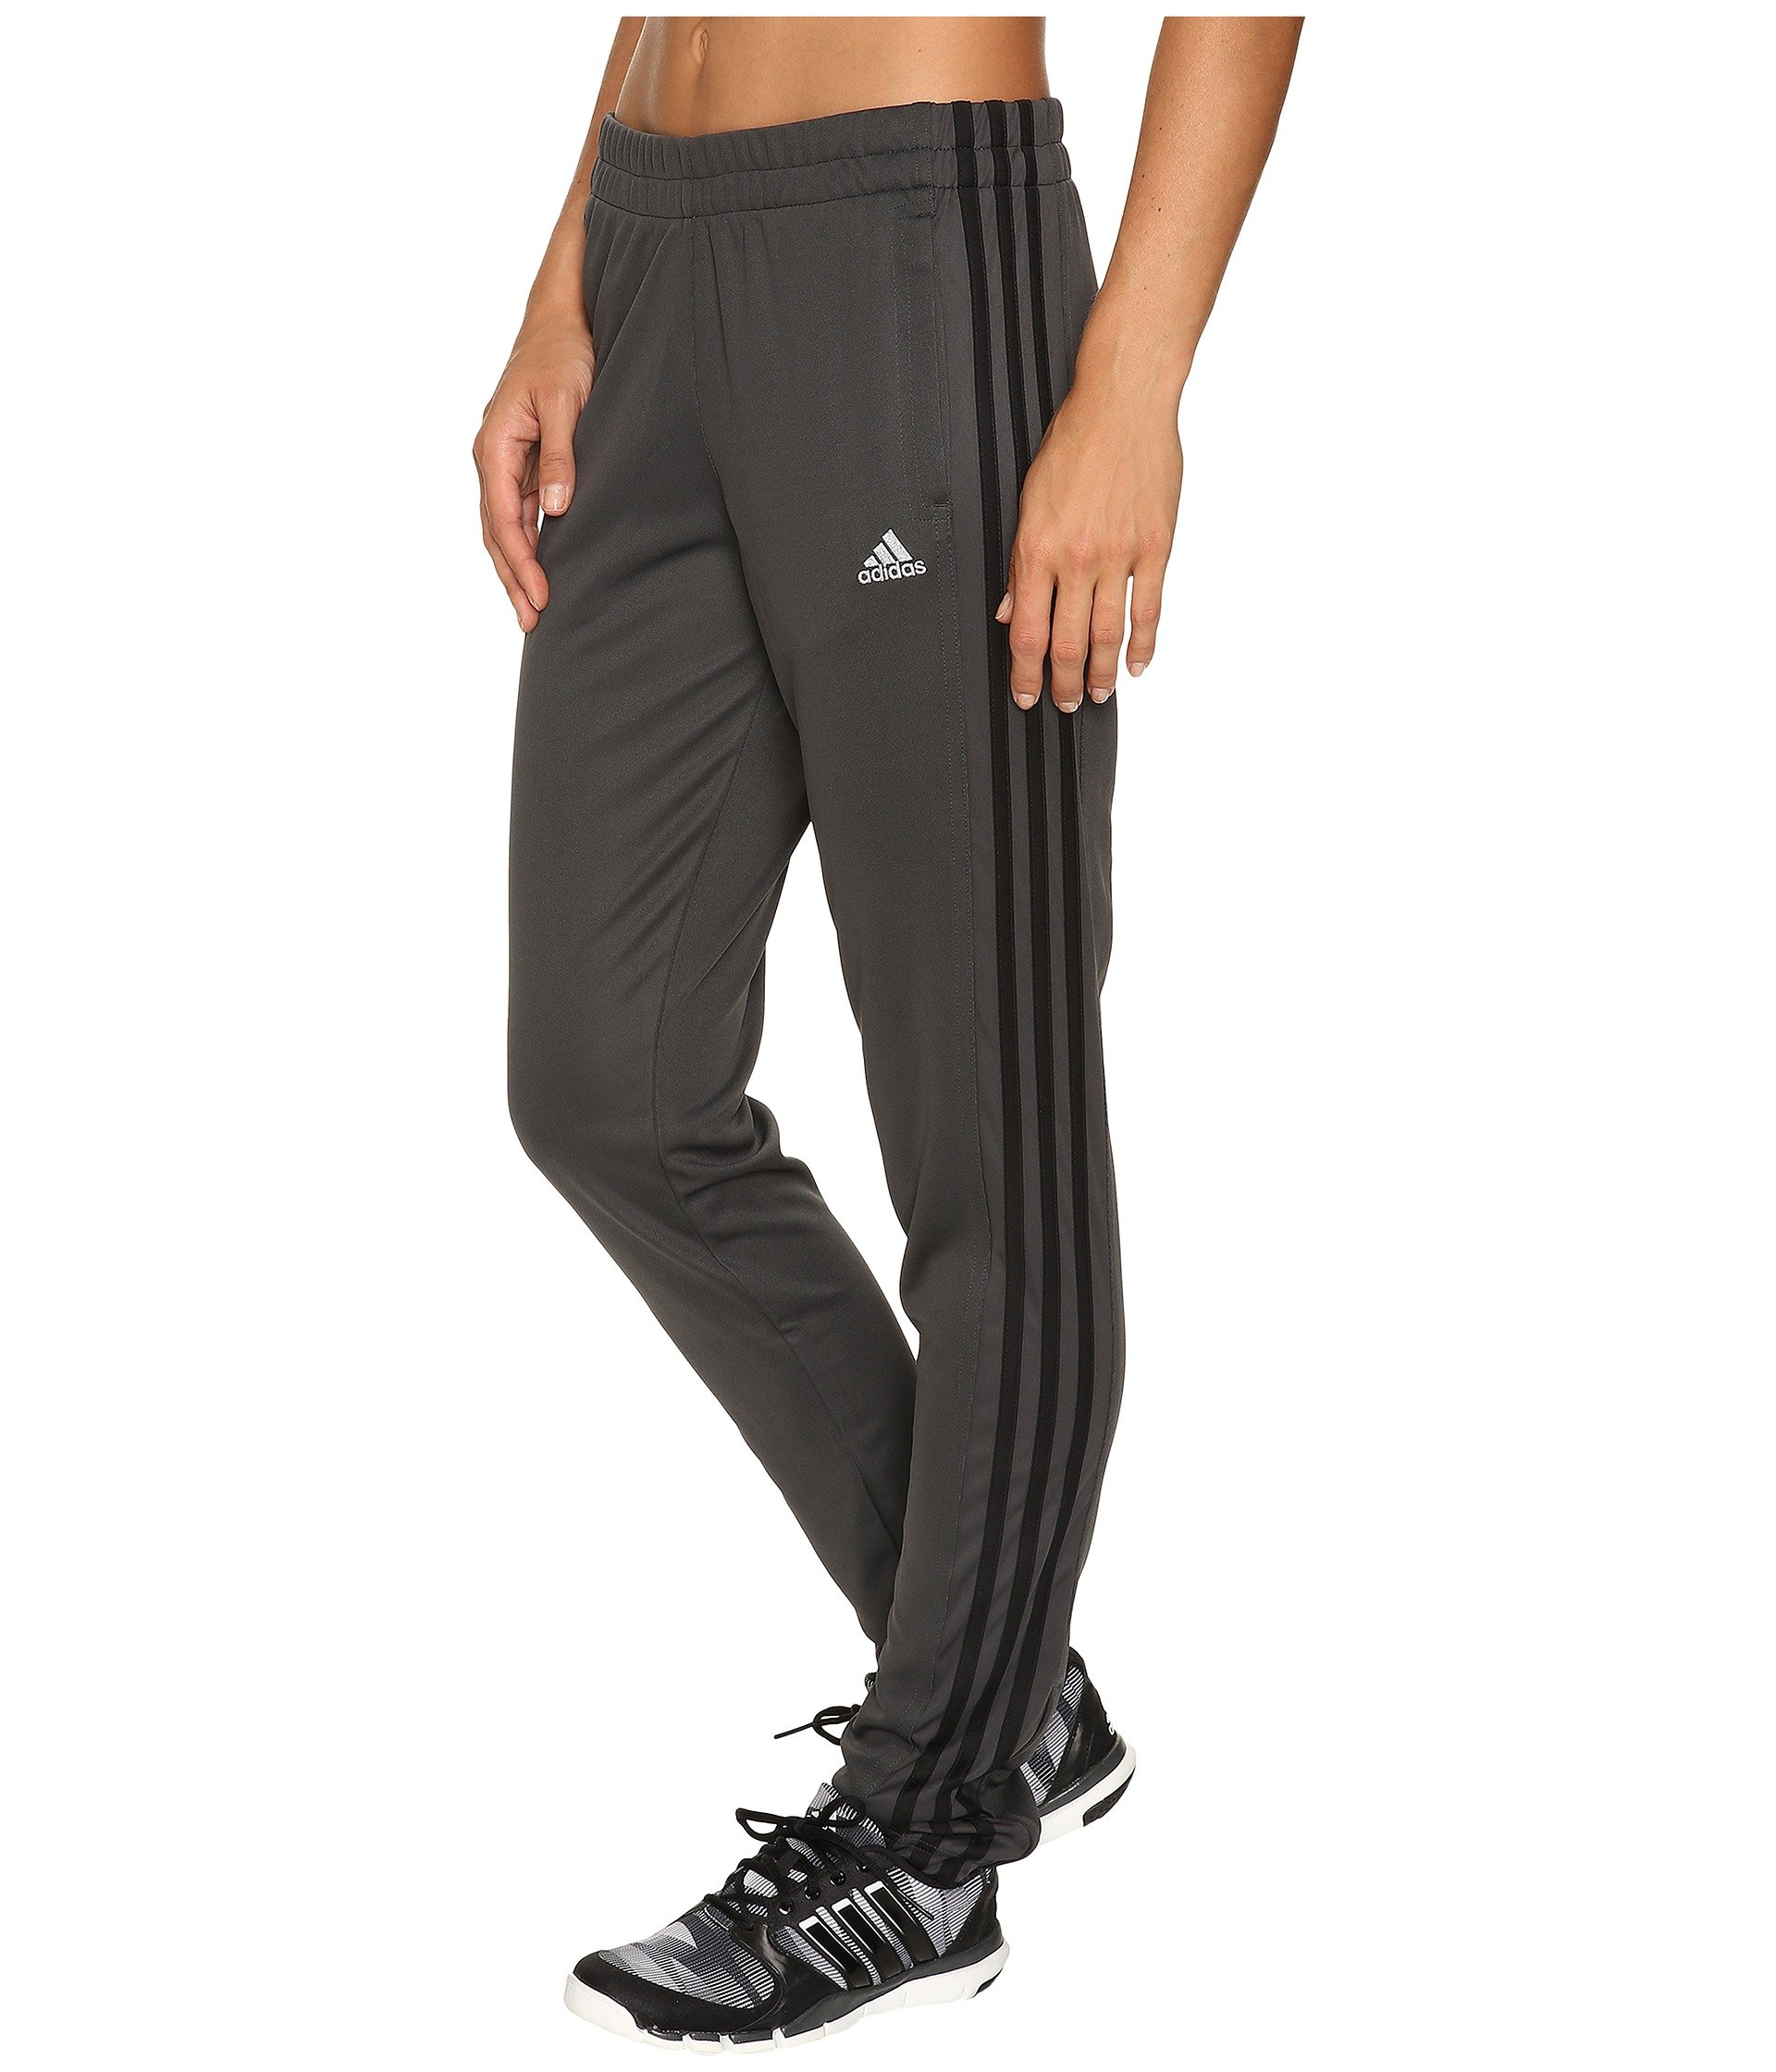 f6a0dd1d64c45 adidas Women's T10 Pants, Pants - Amazon Canada